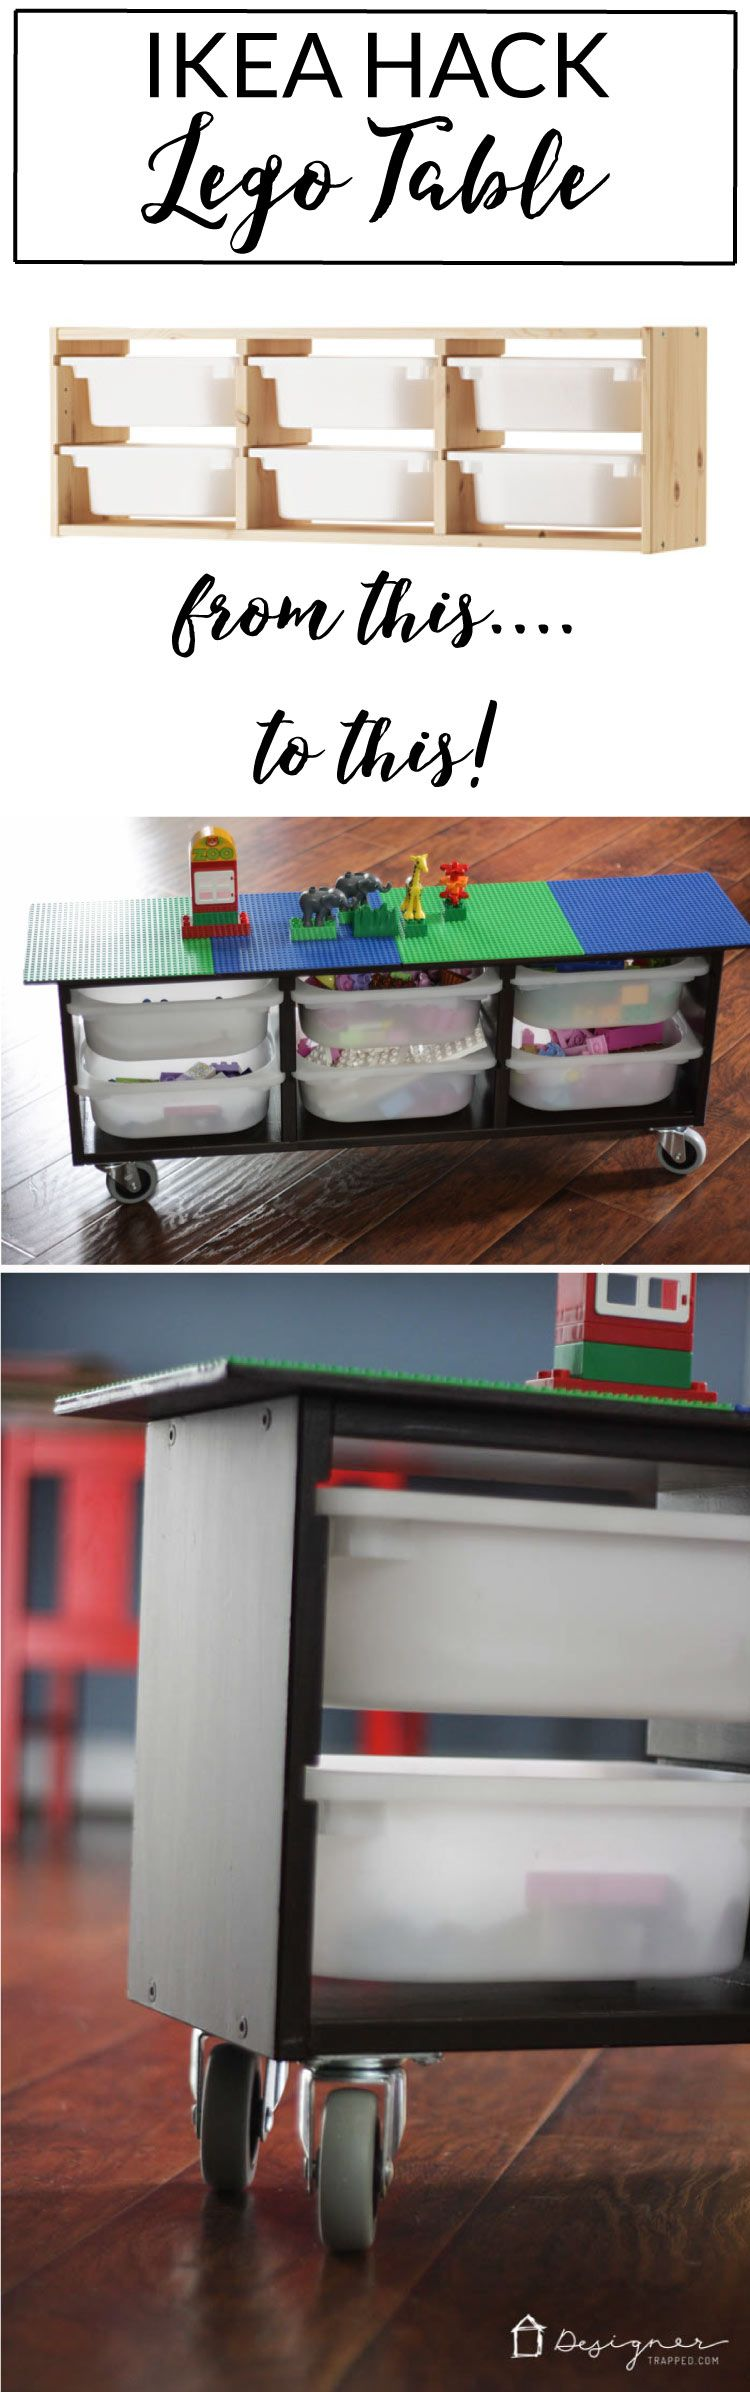 Ikea hack diy lego table ideas para el hogar for Tutorial ikea home planner